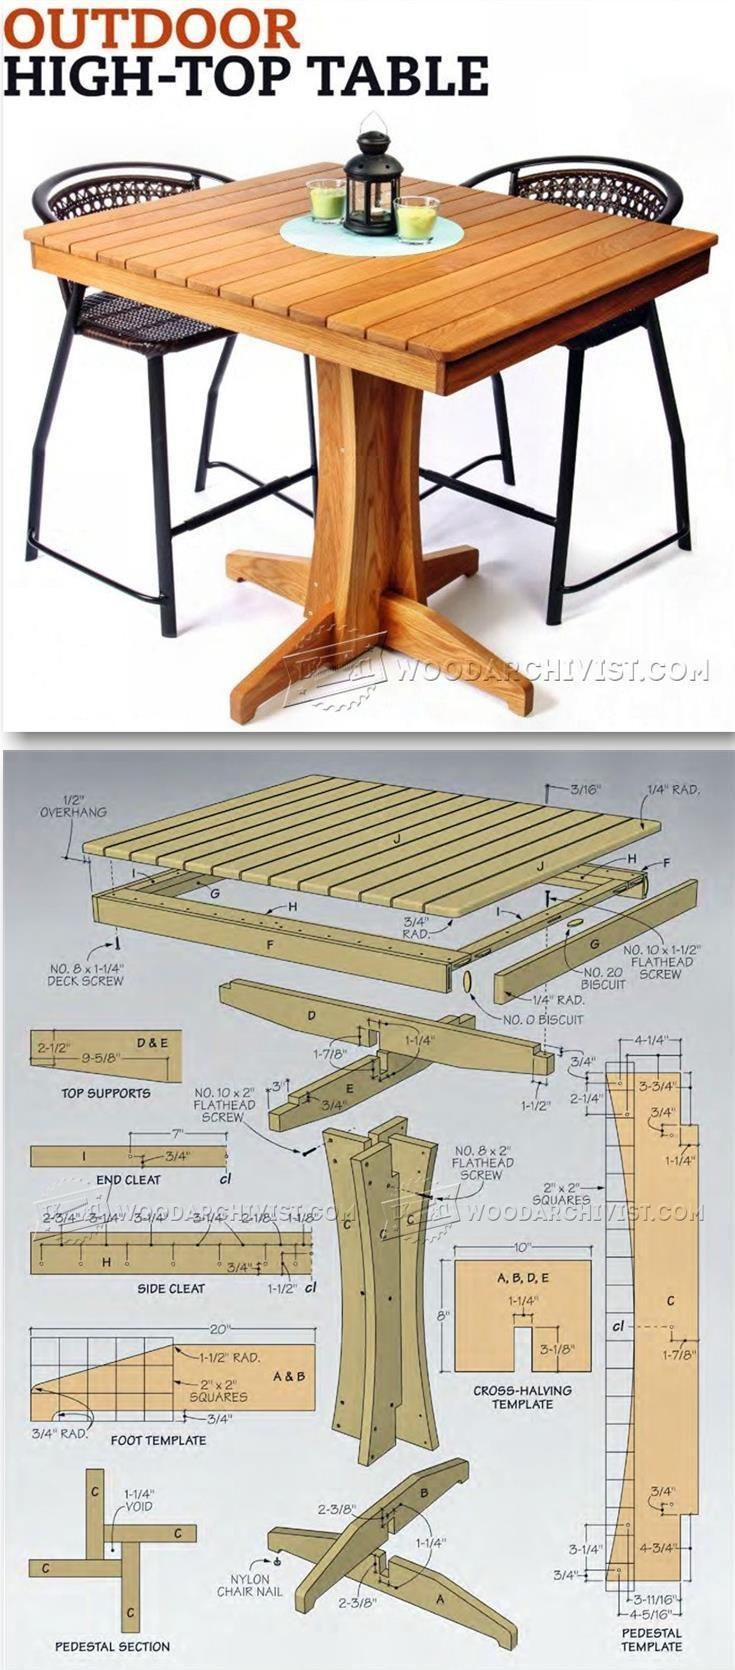 Outdoor High Top Table Plans  Outdoor Furniture Plans & Projects  Http: